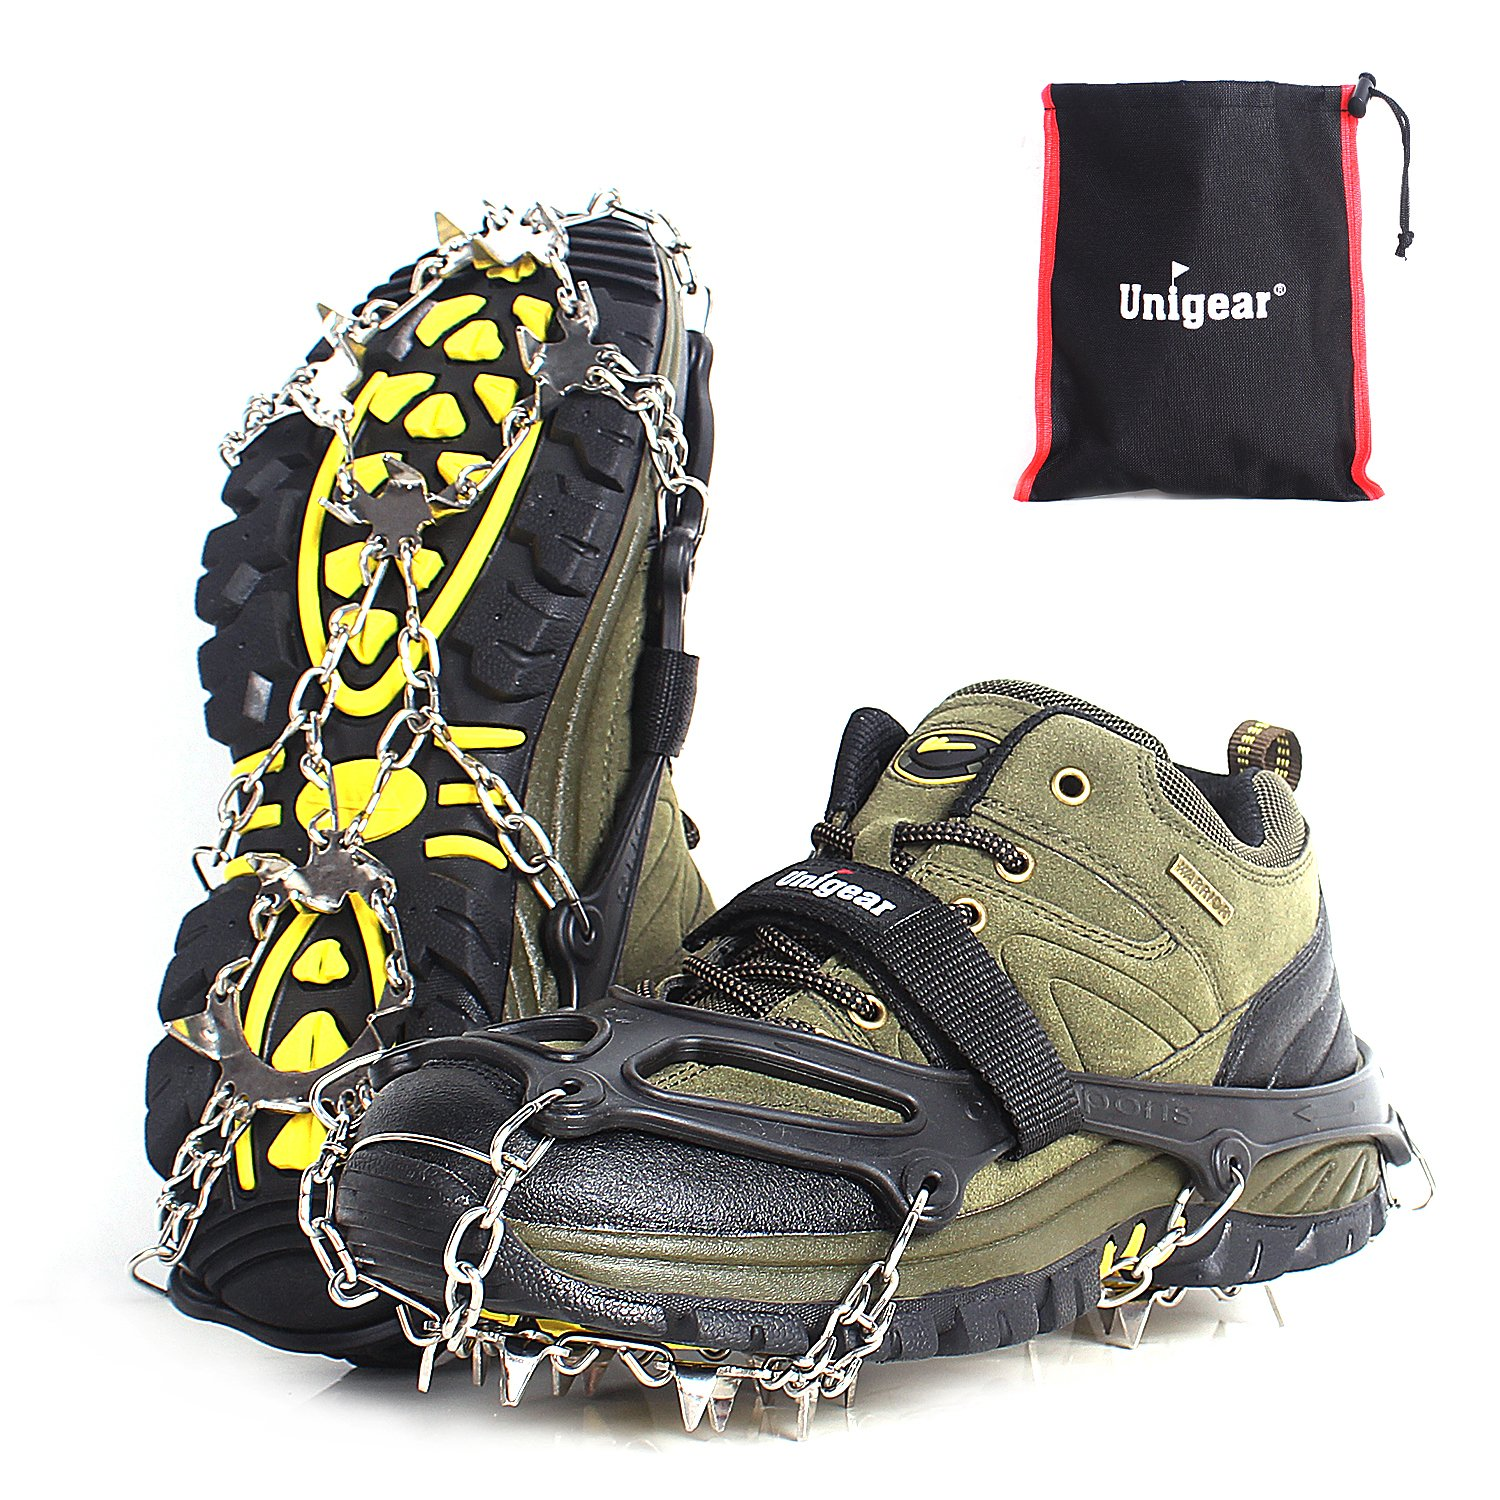 Unigear Traction Cleats Ice Snow Grips with 18 Spikes for Walking, Jogging, Climbing and Hiking (Black, X-Large) by Unigear